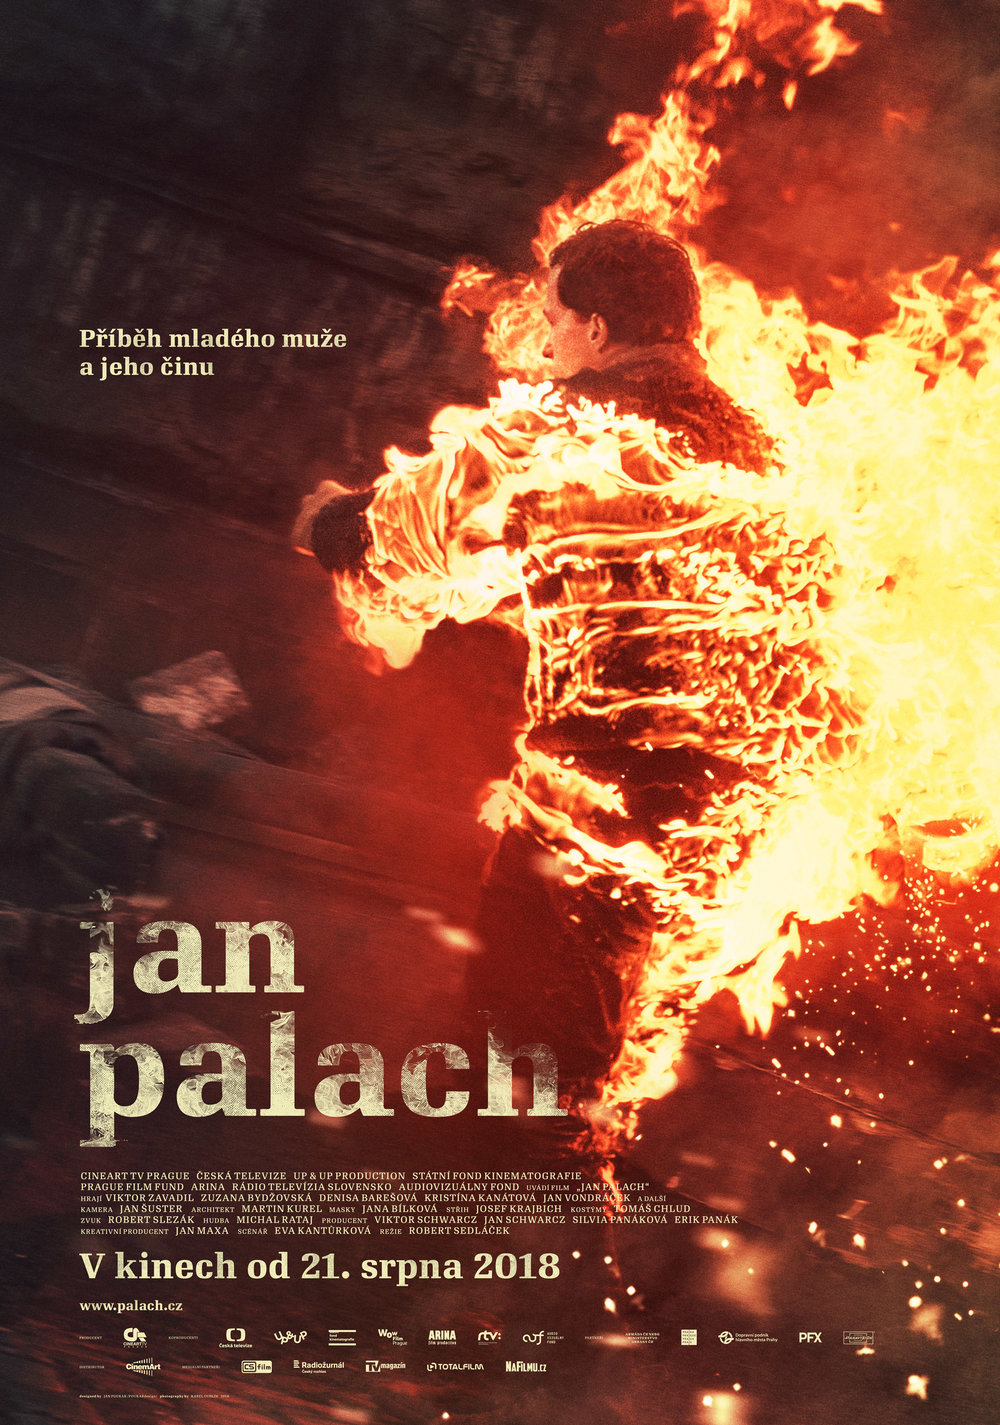 jan_palach_poster_final_skica.jpg